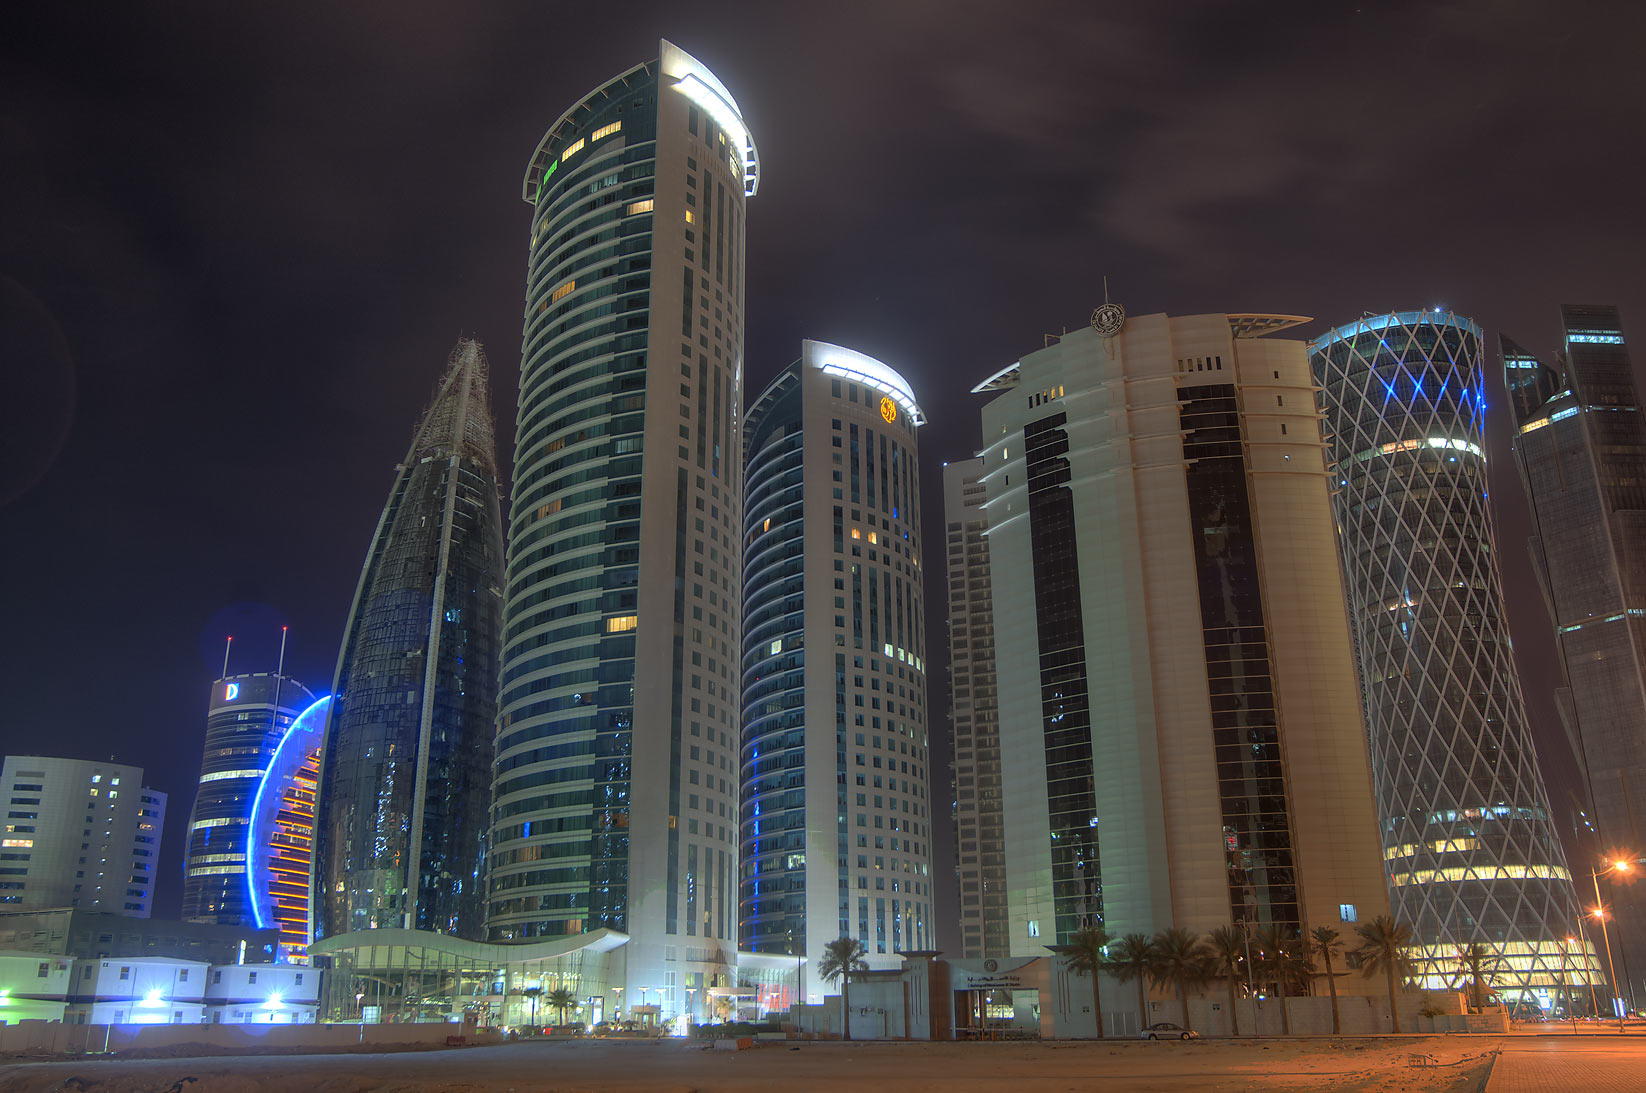 Office towers in West Bay, view from empty land behind City Center Mall. Doha, Qatar